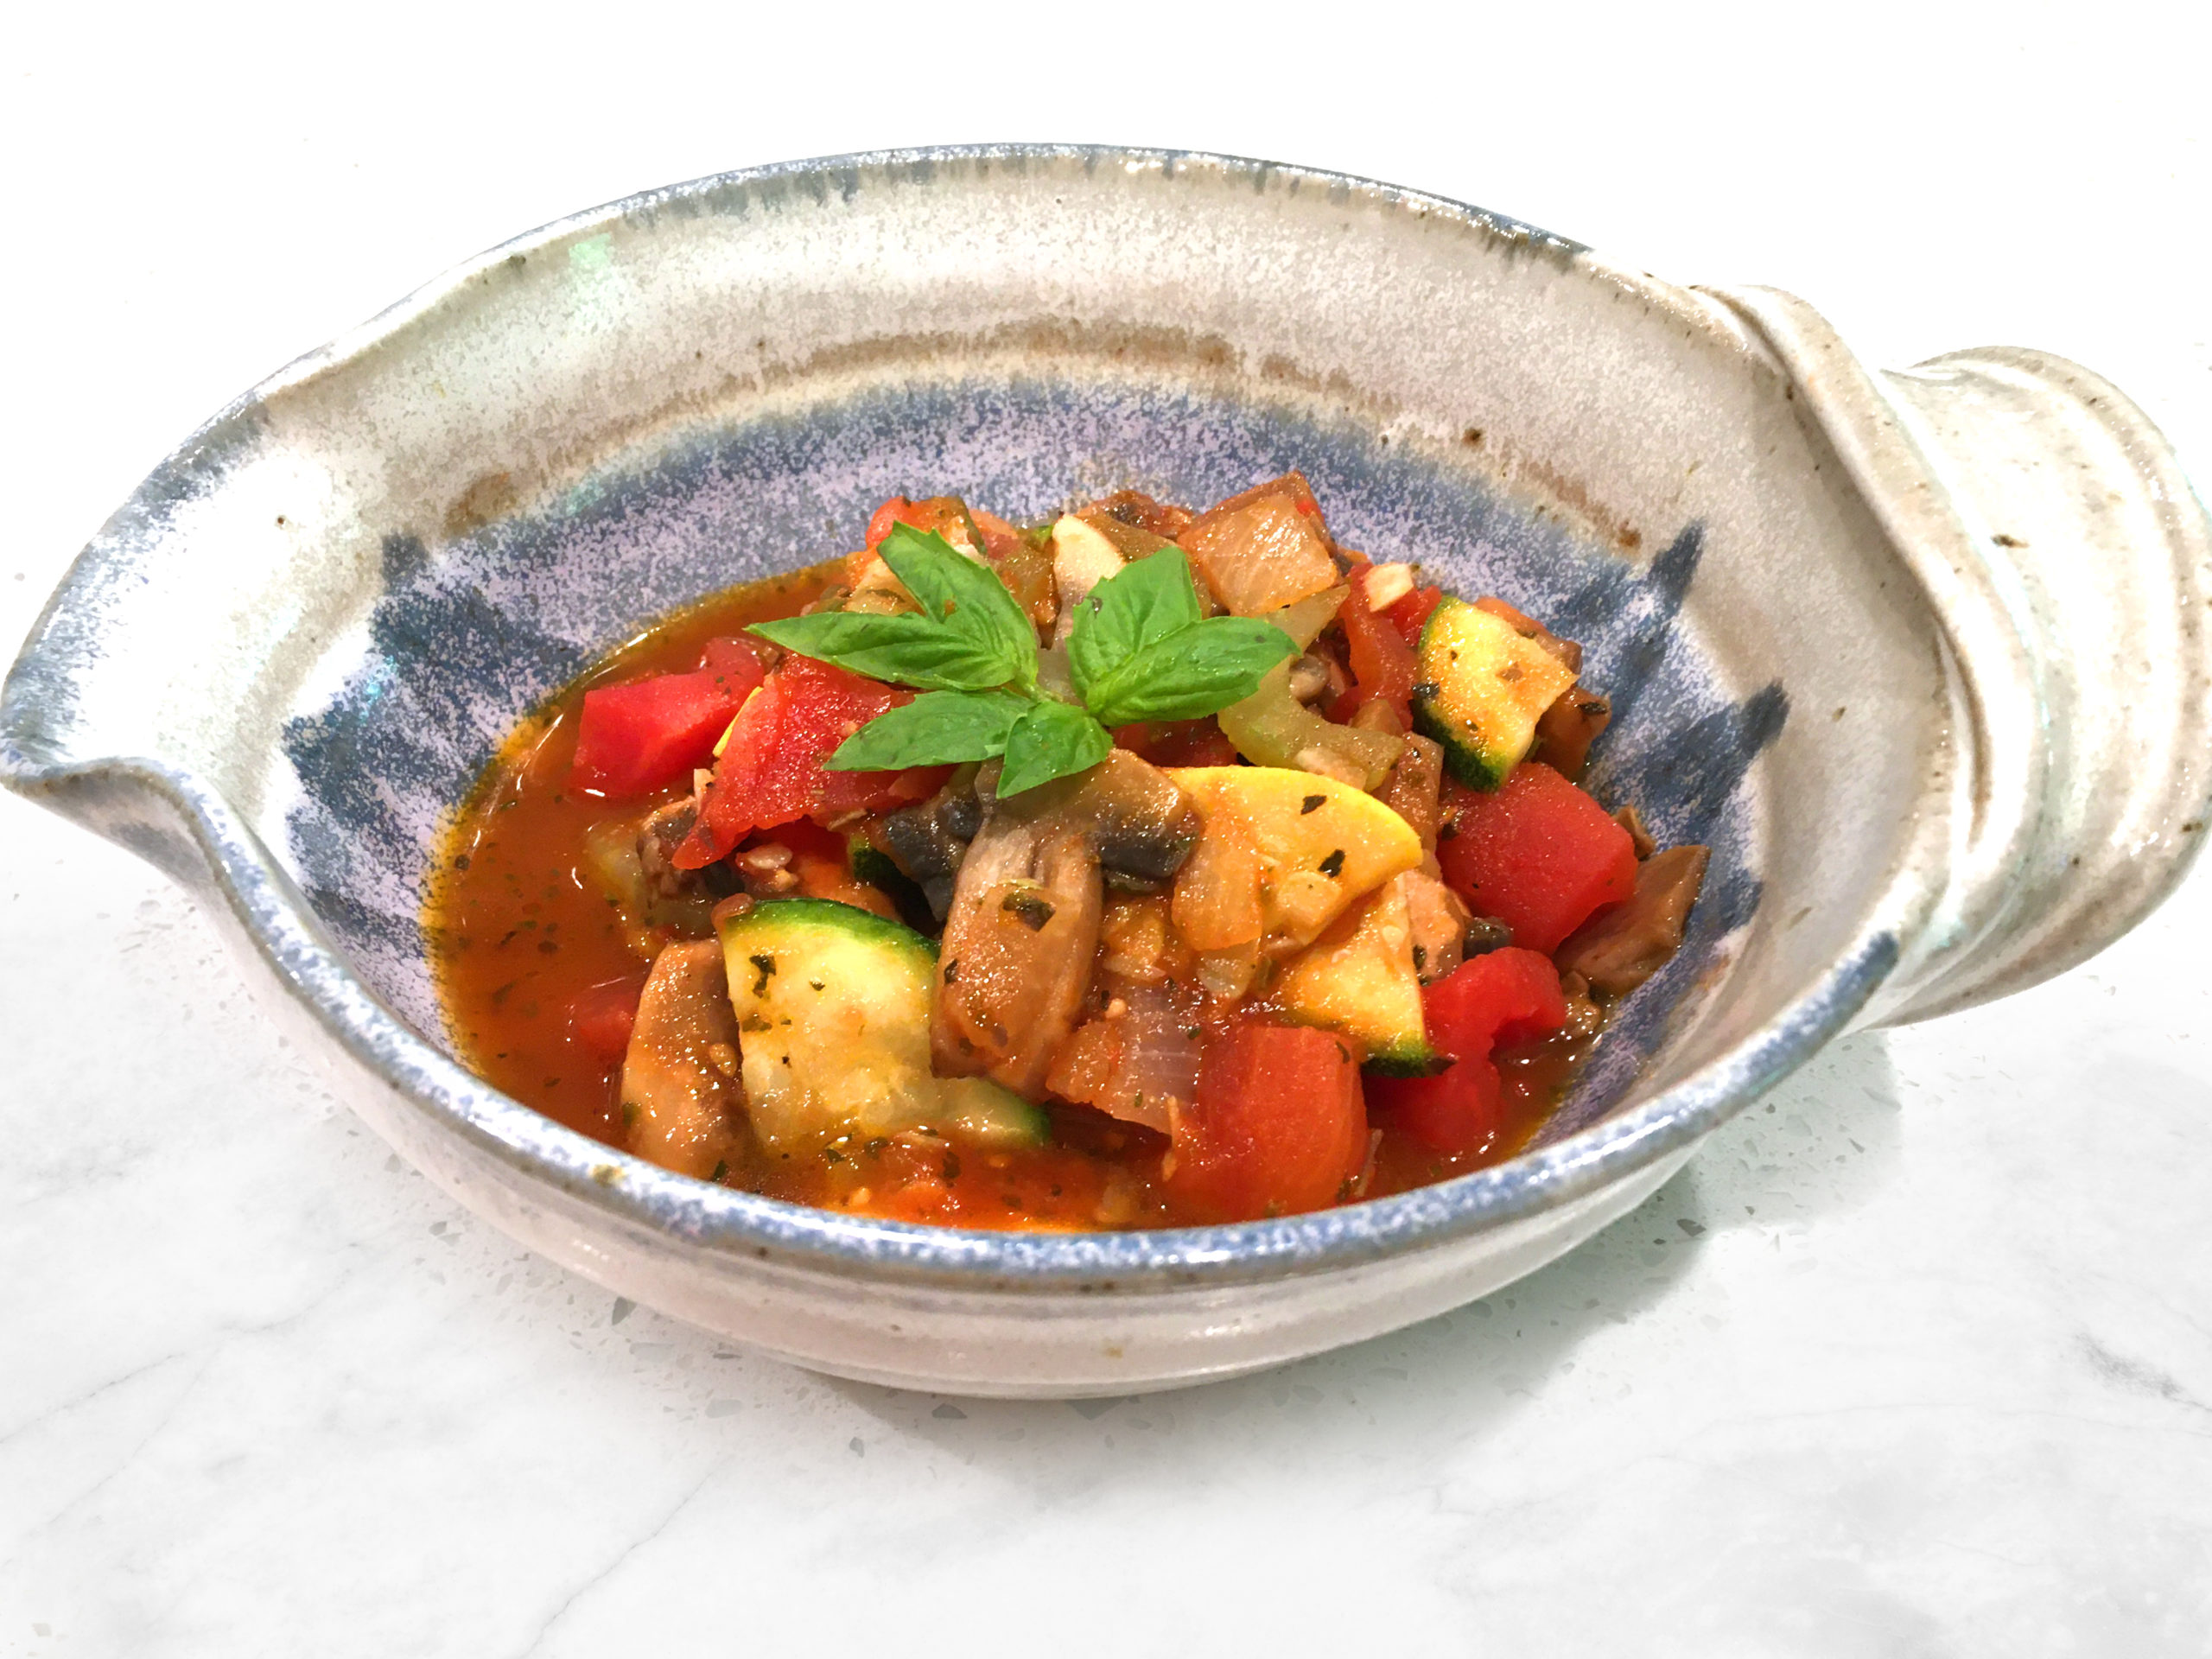 Tomato Braised Vegetables